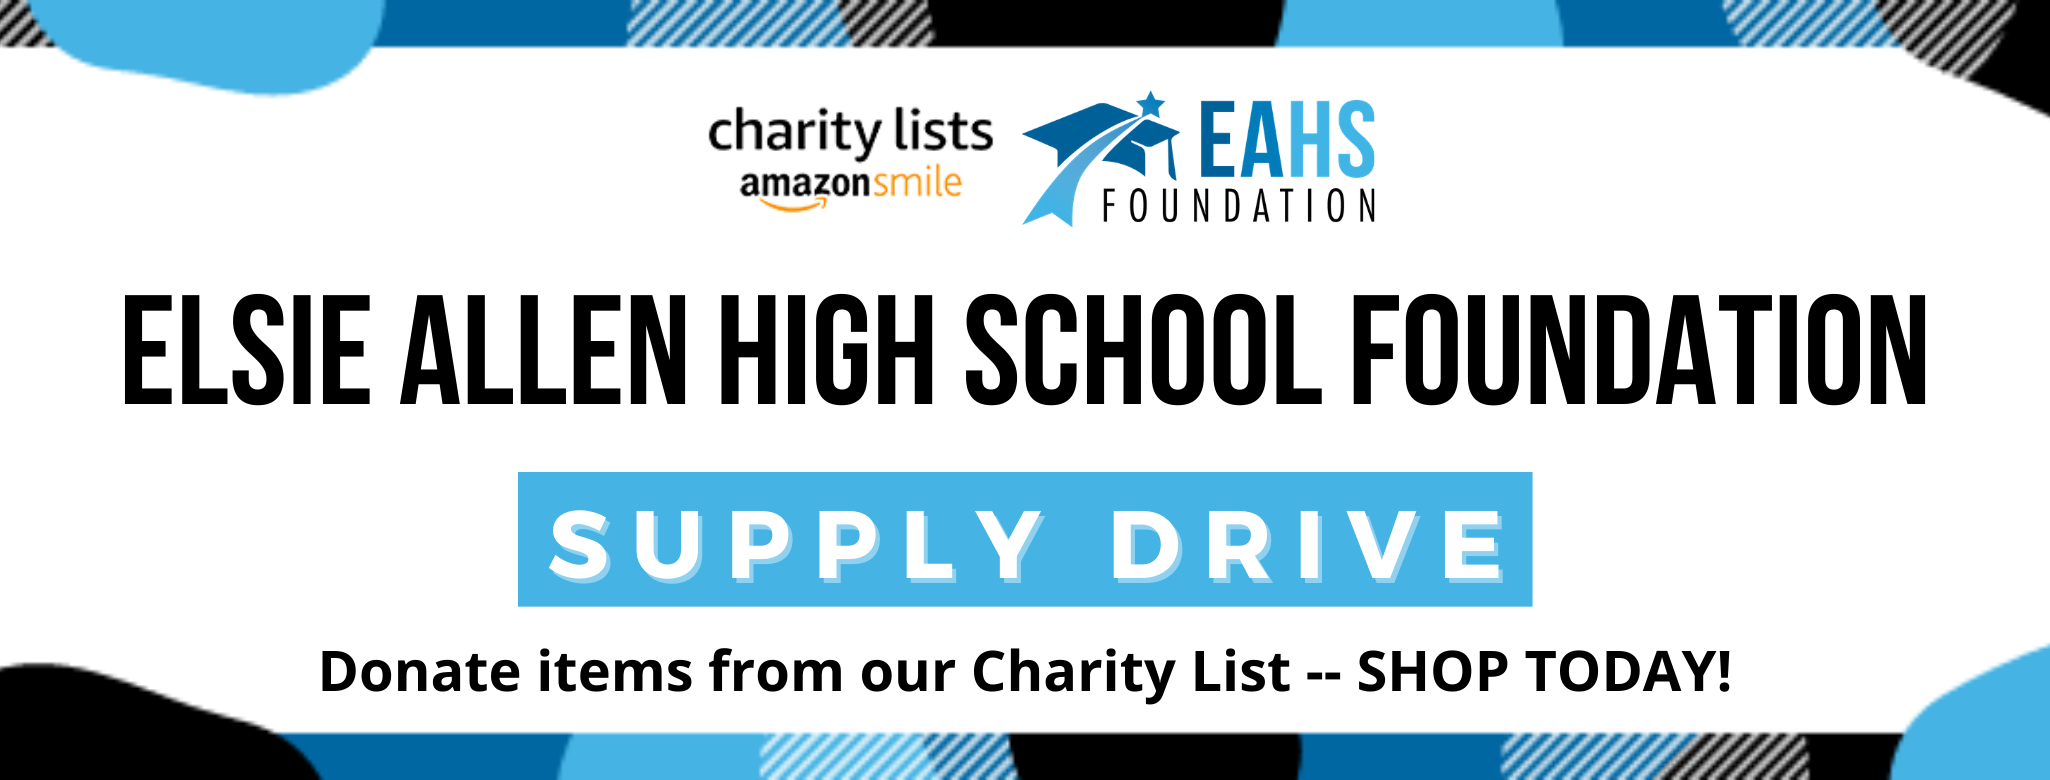 EAHS Foundation Supply Drive